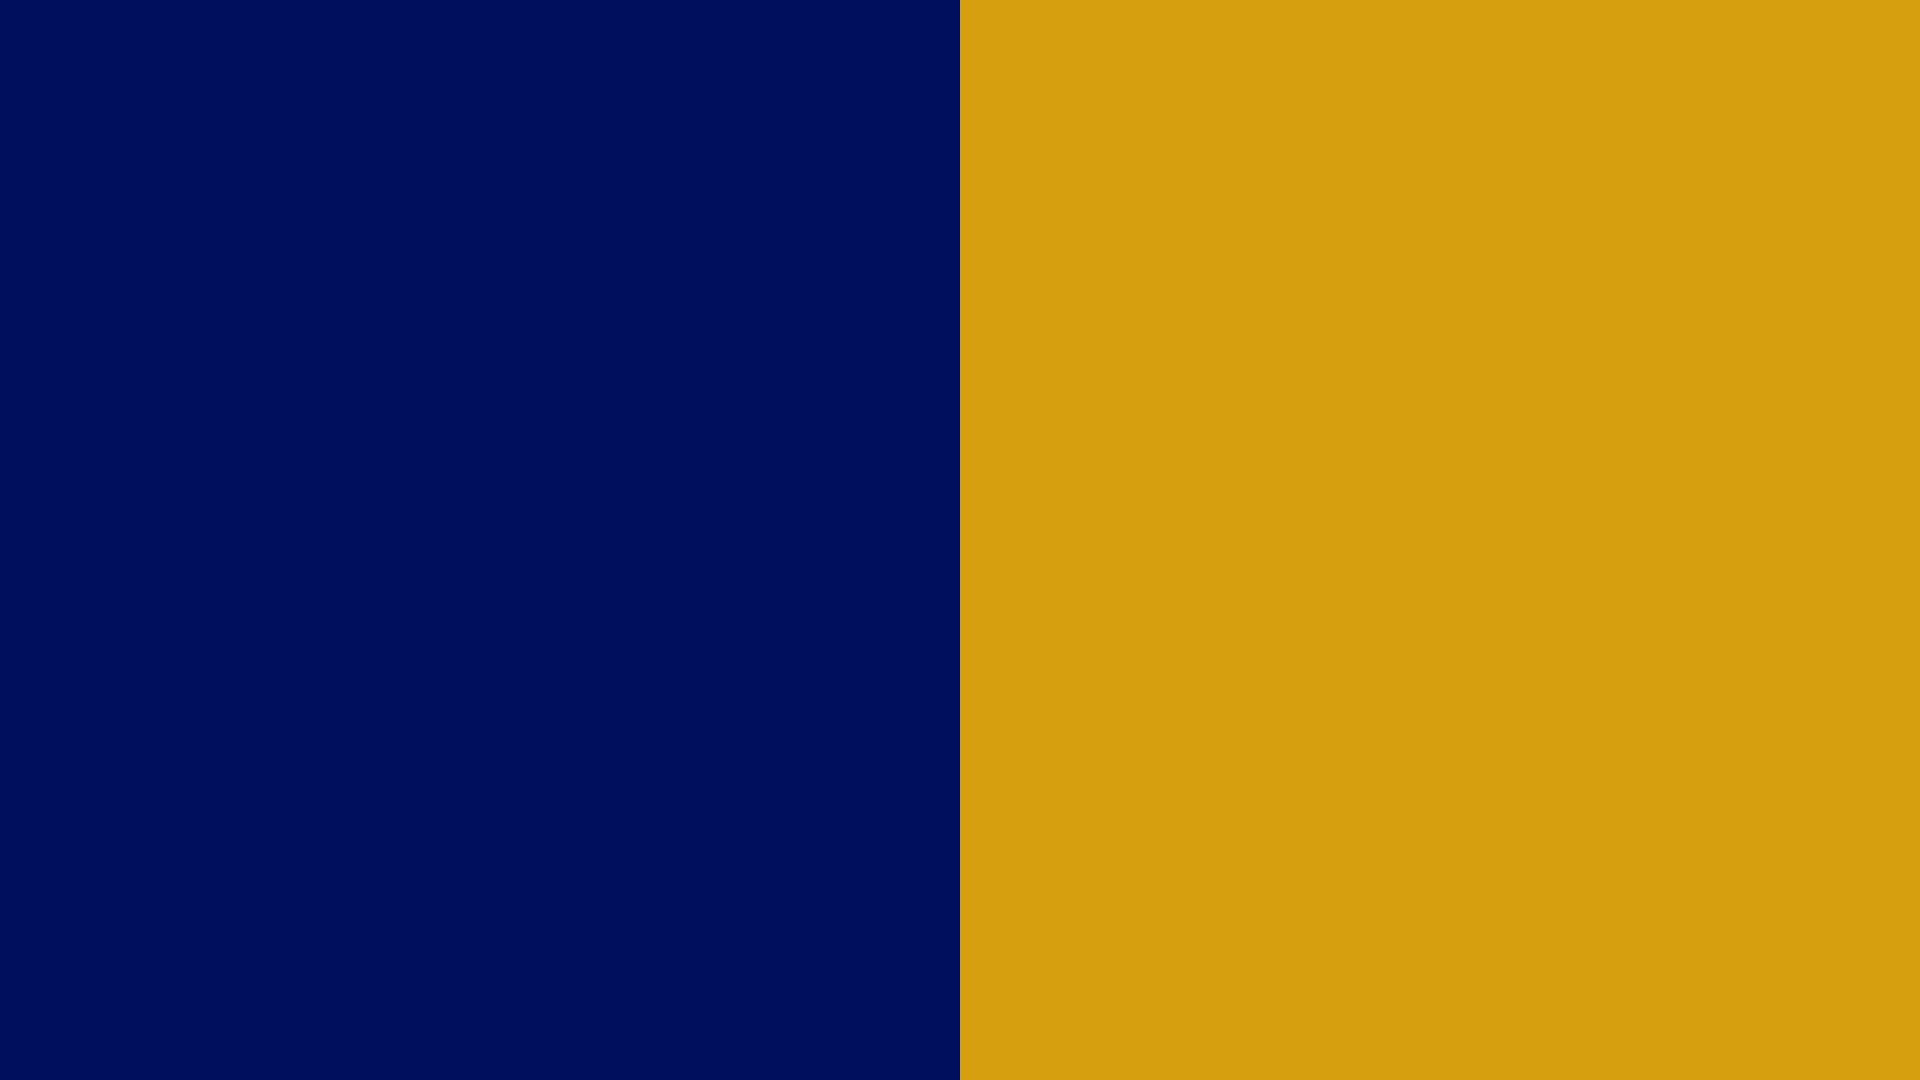 Indiana State (USA) Flag Colors Color Palette